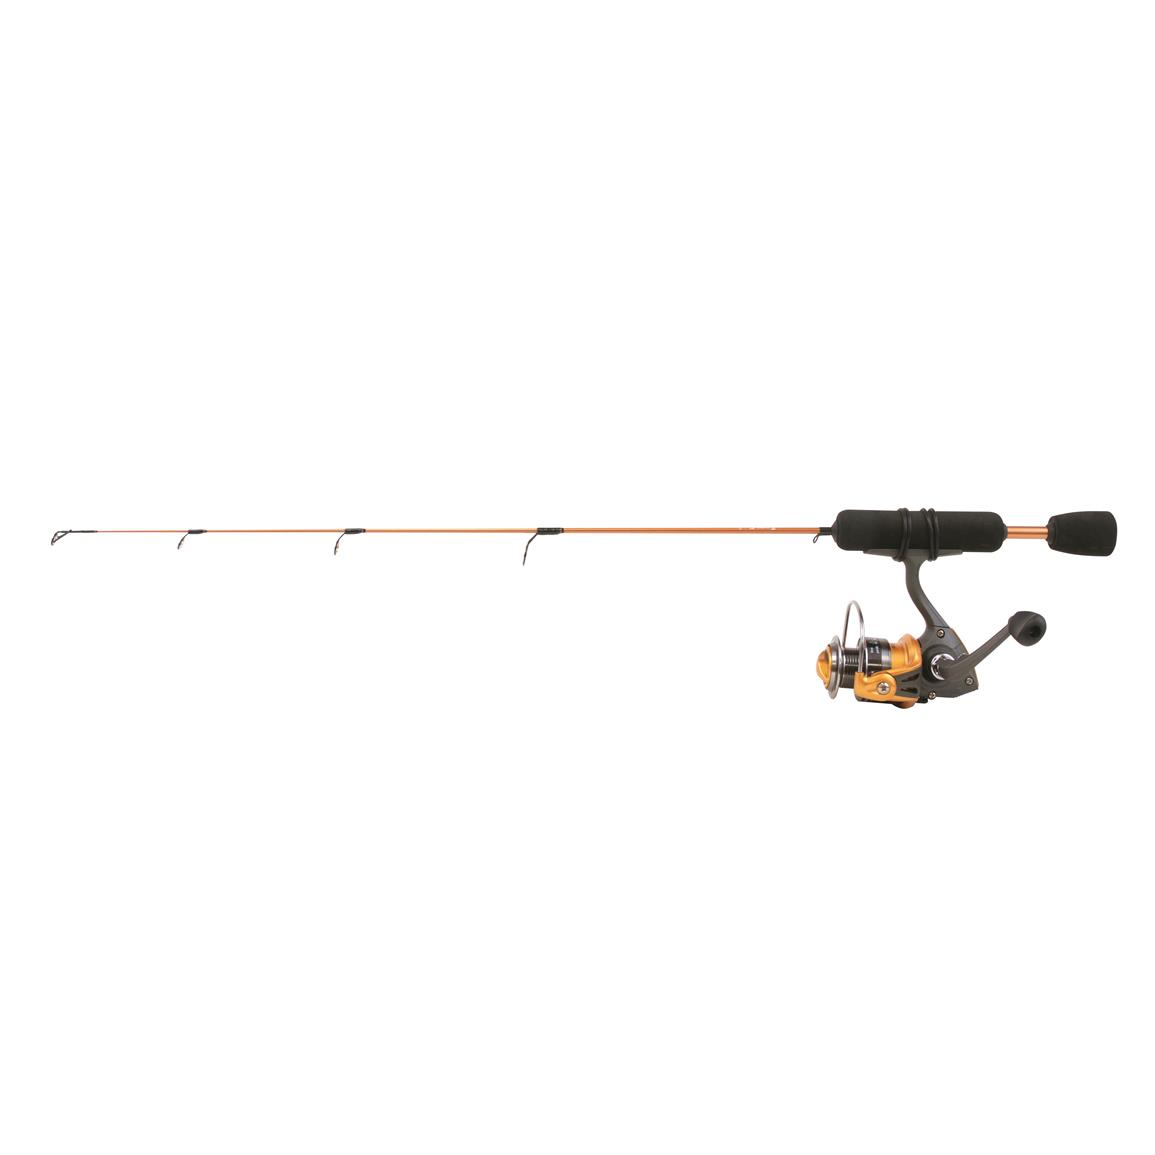 "Clam Dave Genz Power Stick Series 24"" Ice Fishing Rod and Reel Combo, Medium Action"